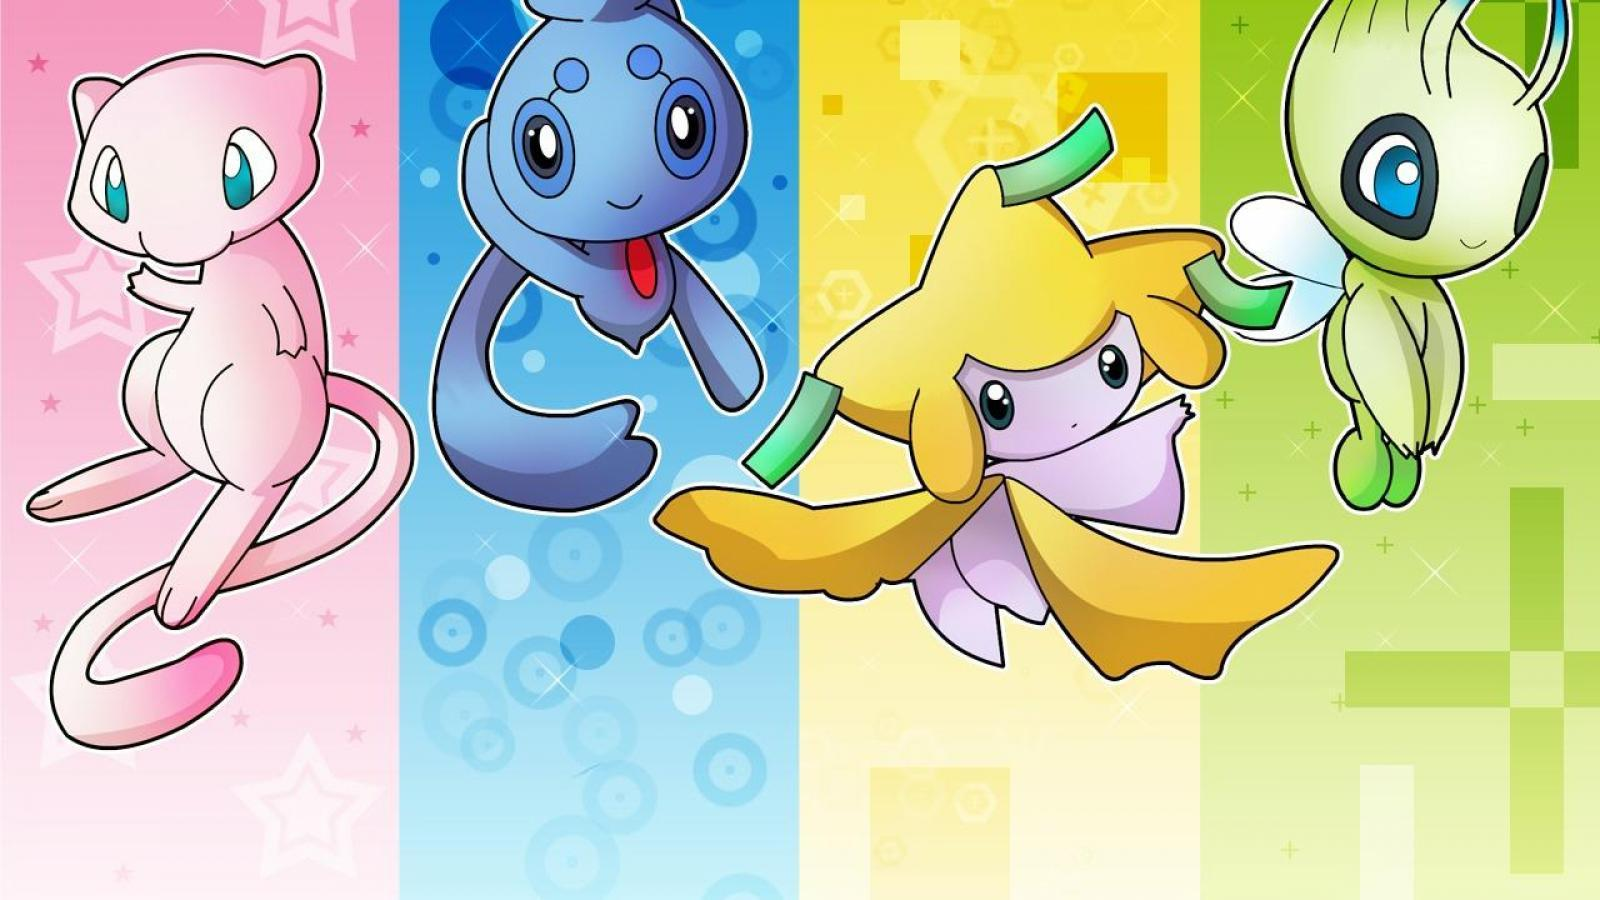 Mew (pokemon) images 4 Amigos HD wallpaper and background photos ...